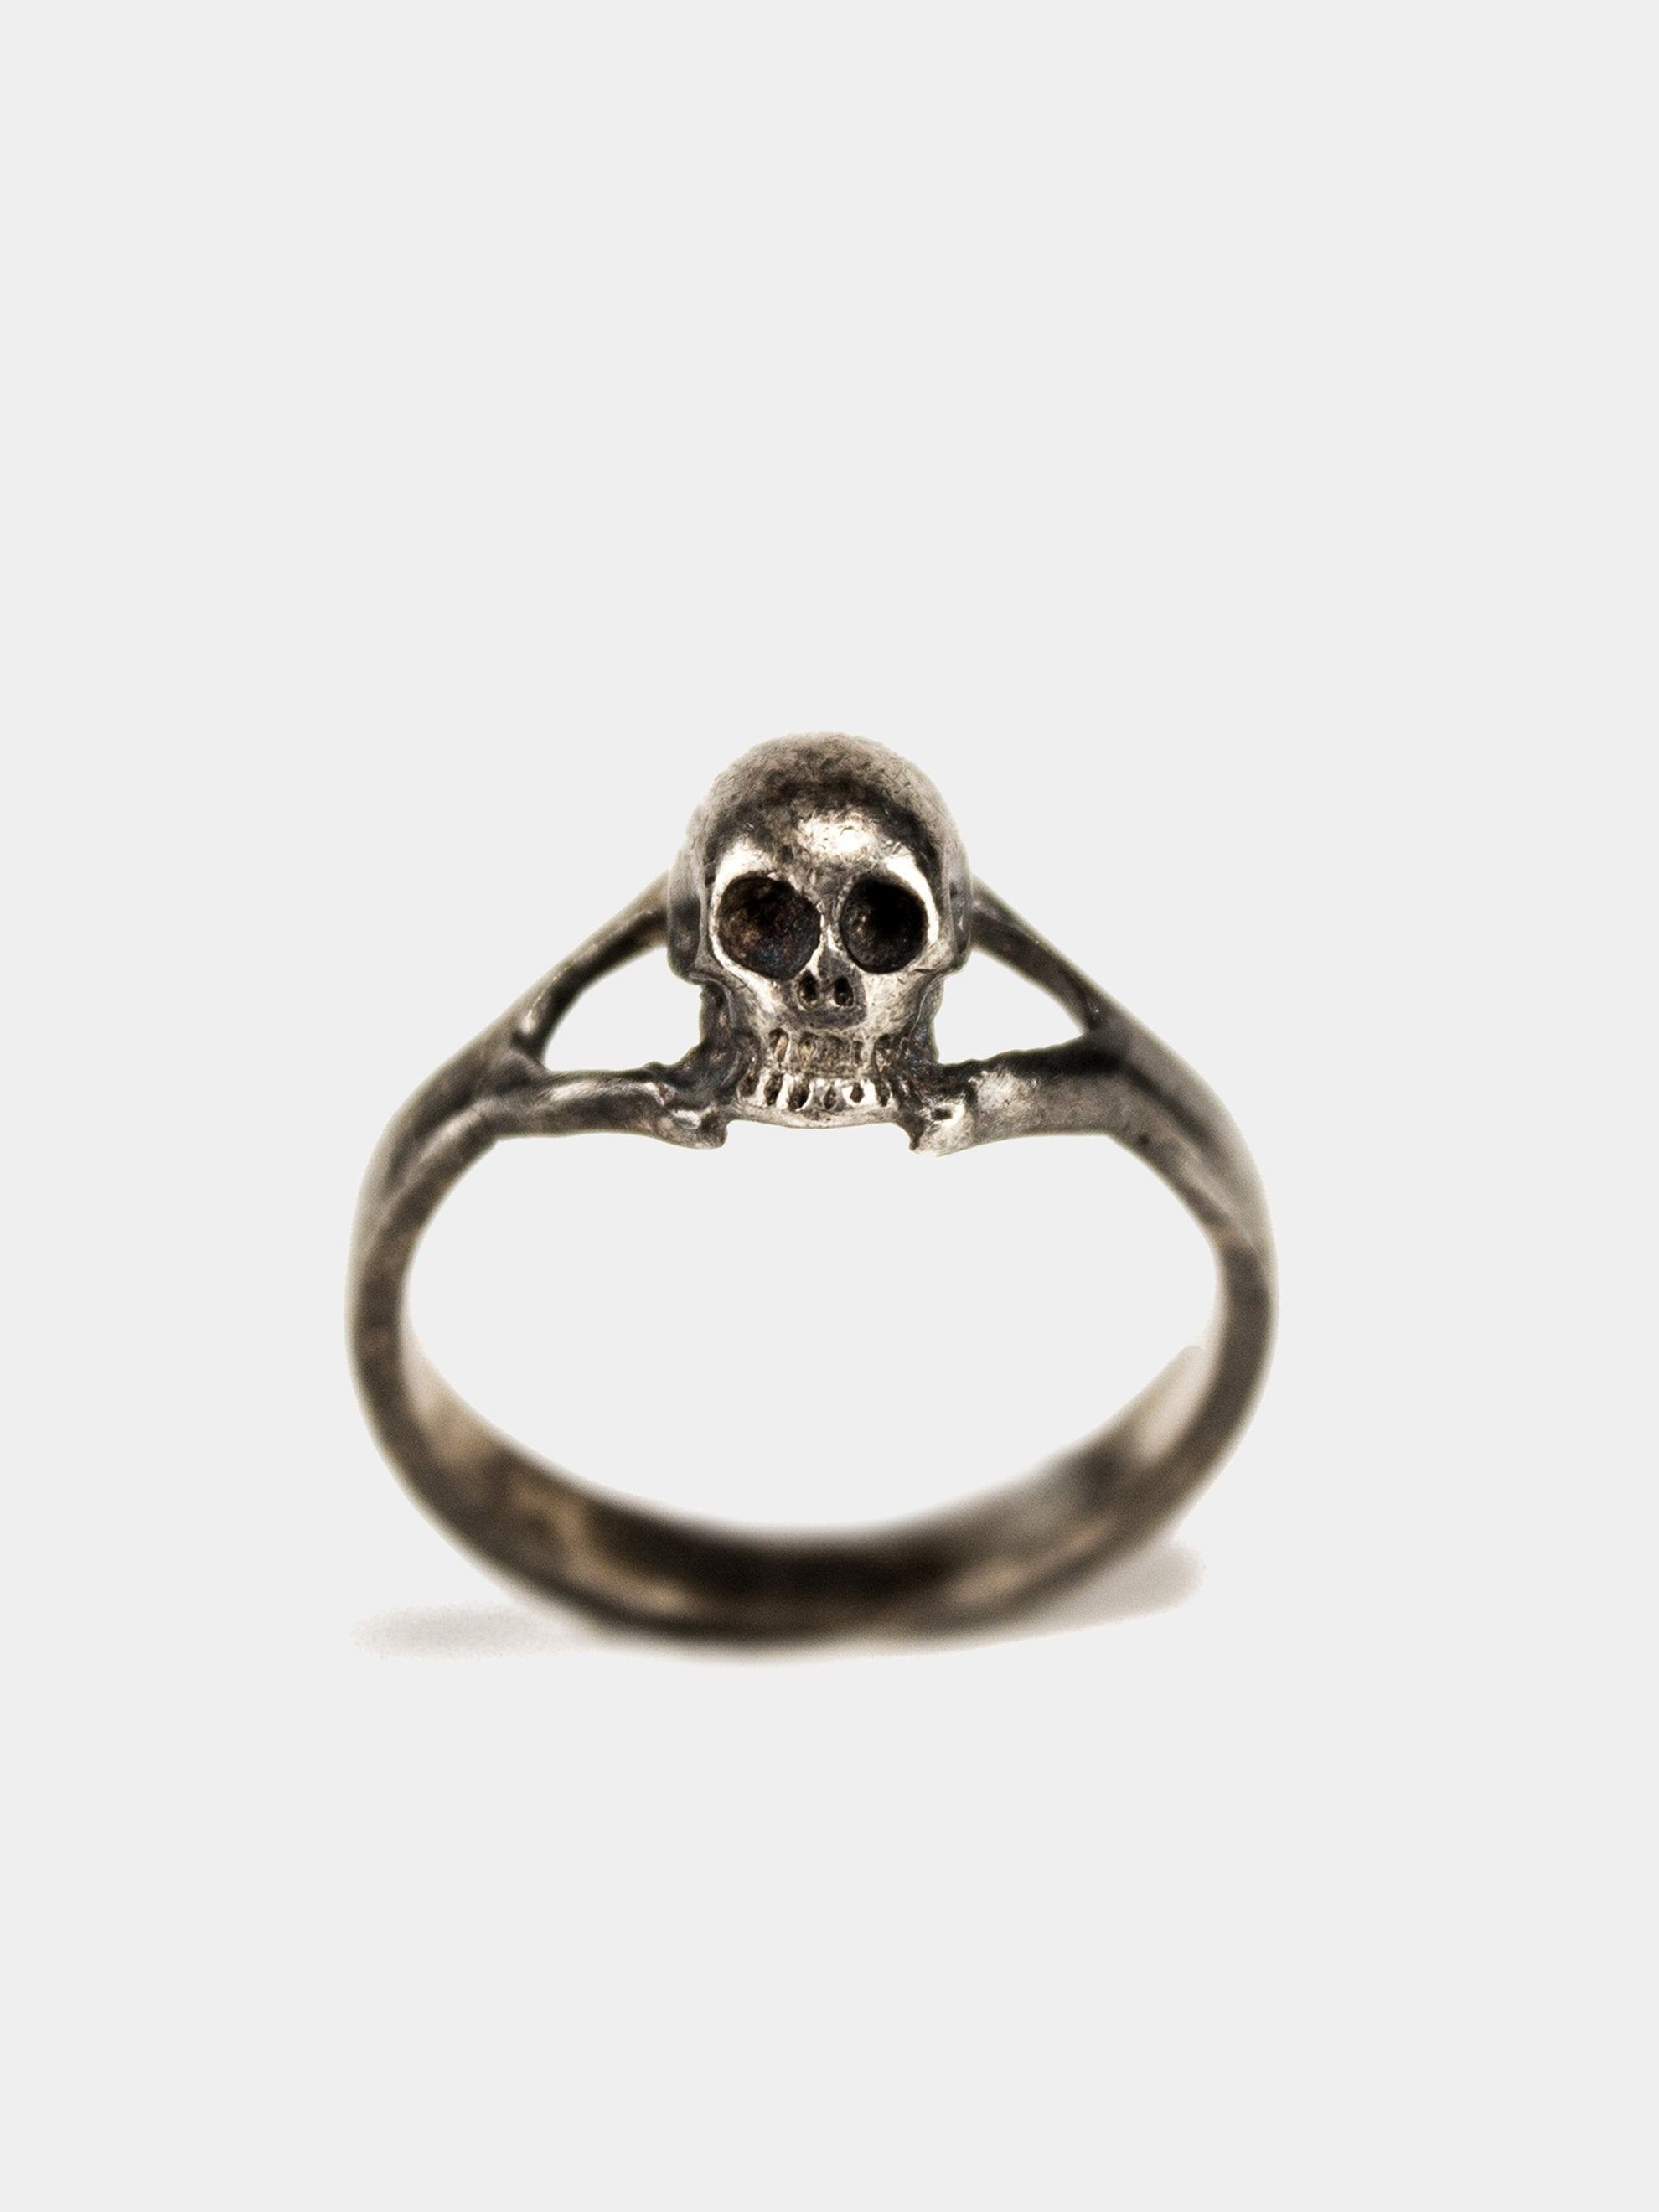 9 Vintage Solid Sterling Silver Small Skull Biker Ring 1